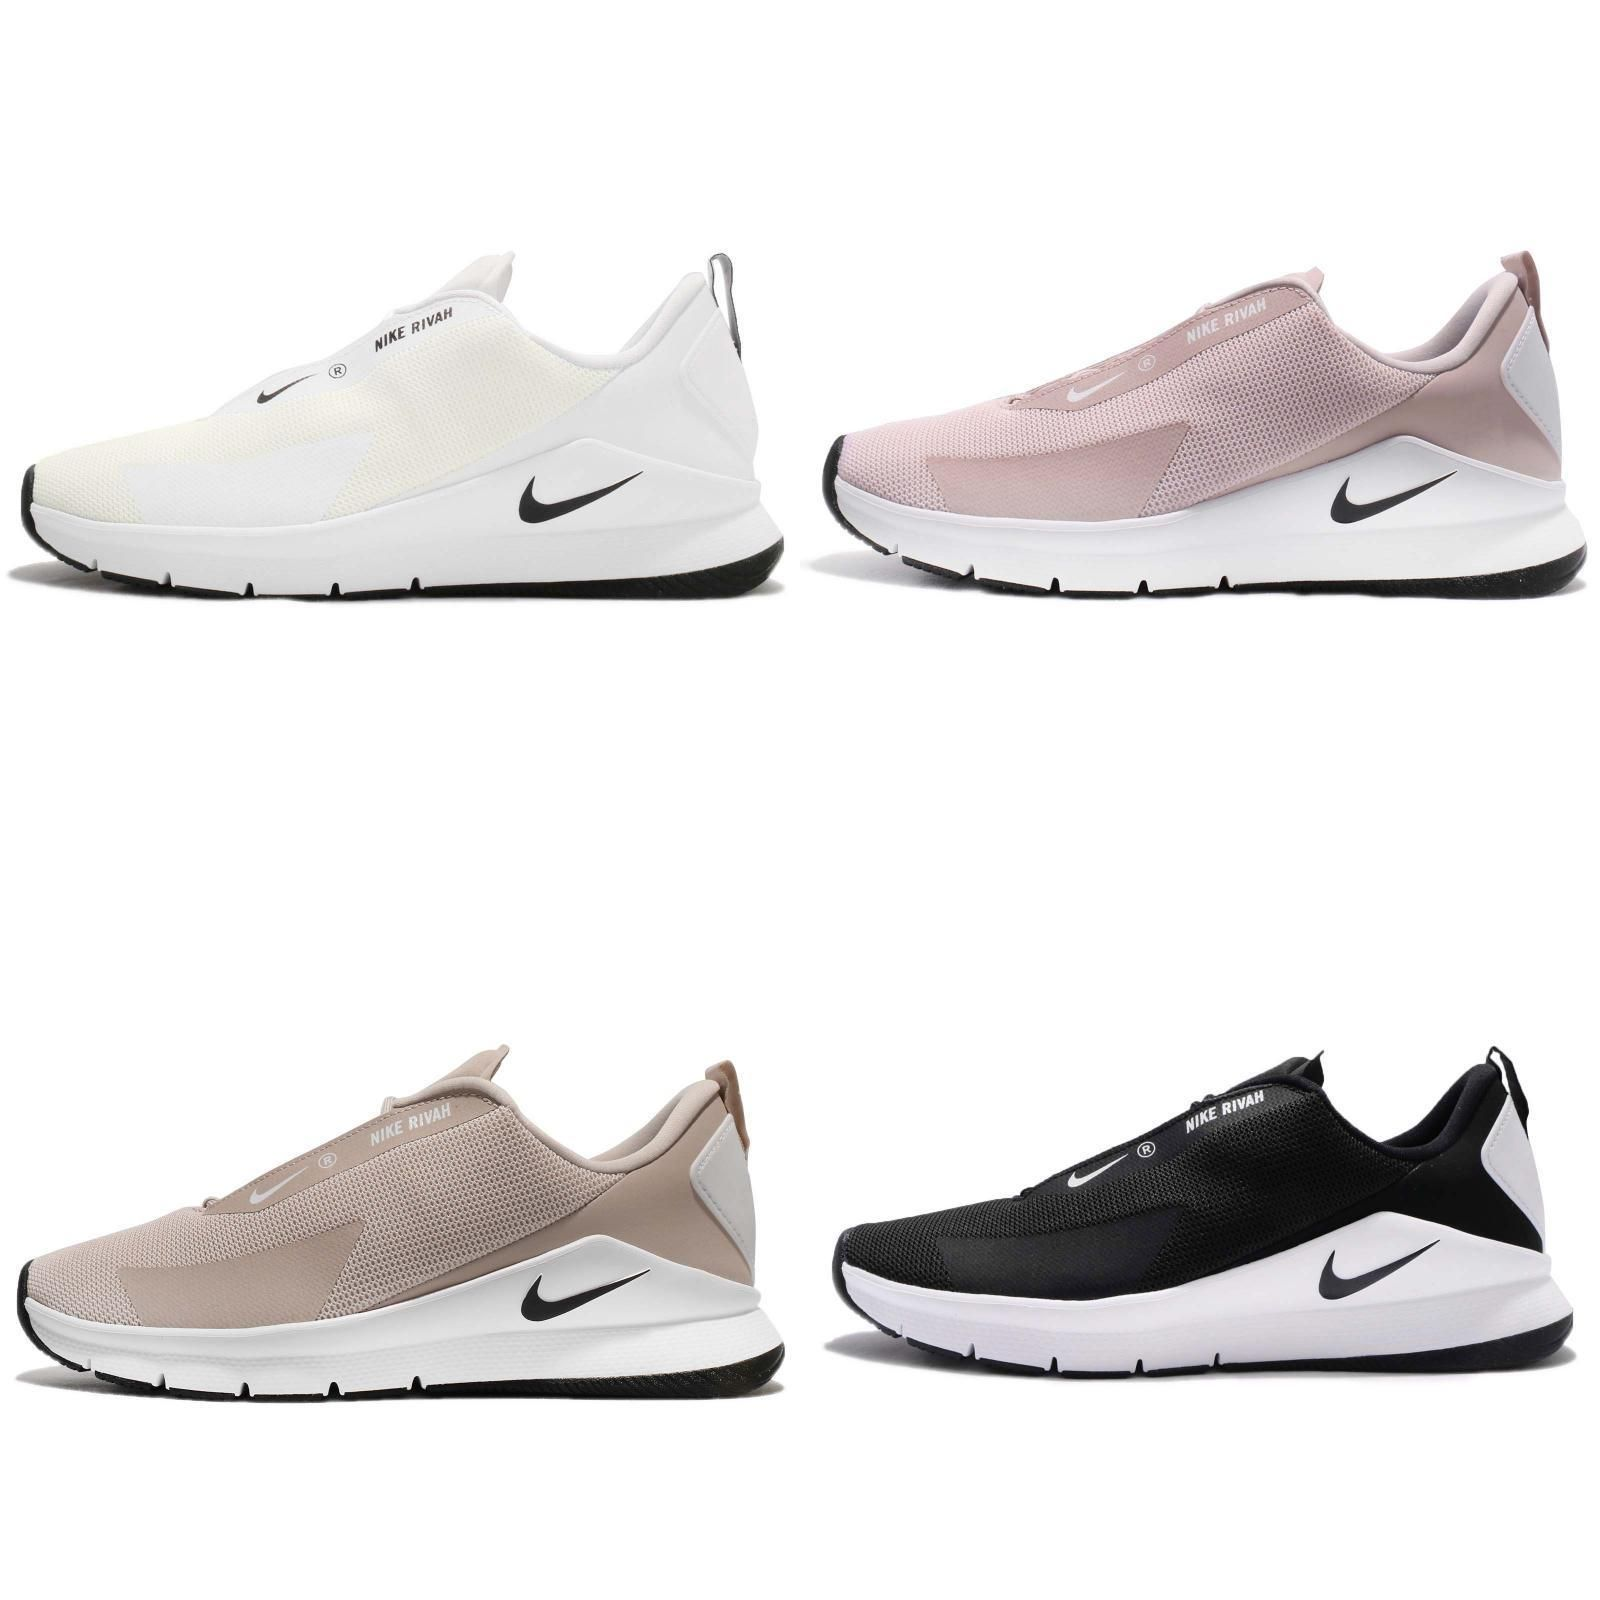 21a67b7d999d Wmns Nike Rivah Women Slip On Running Shoes Sneakers Trainers Pick 1 ...